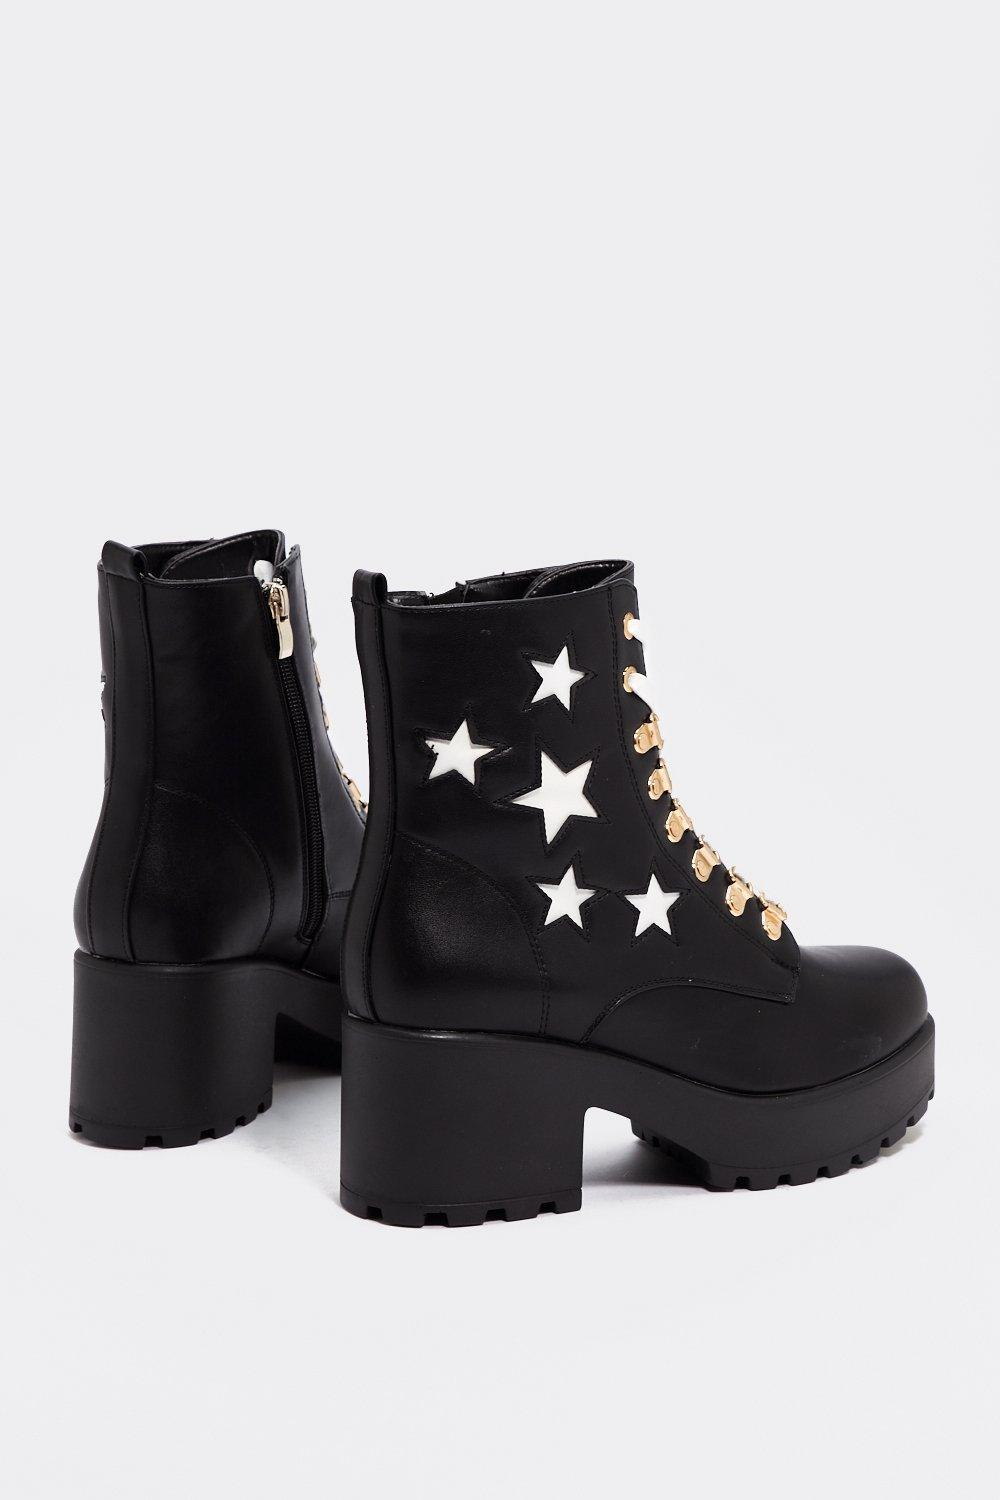 Nasty Gal You're Gonna Go Star Boot in Black